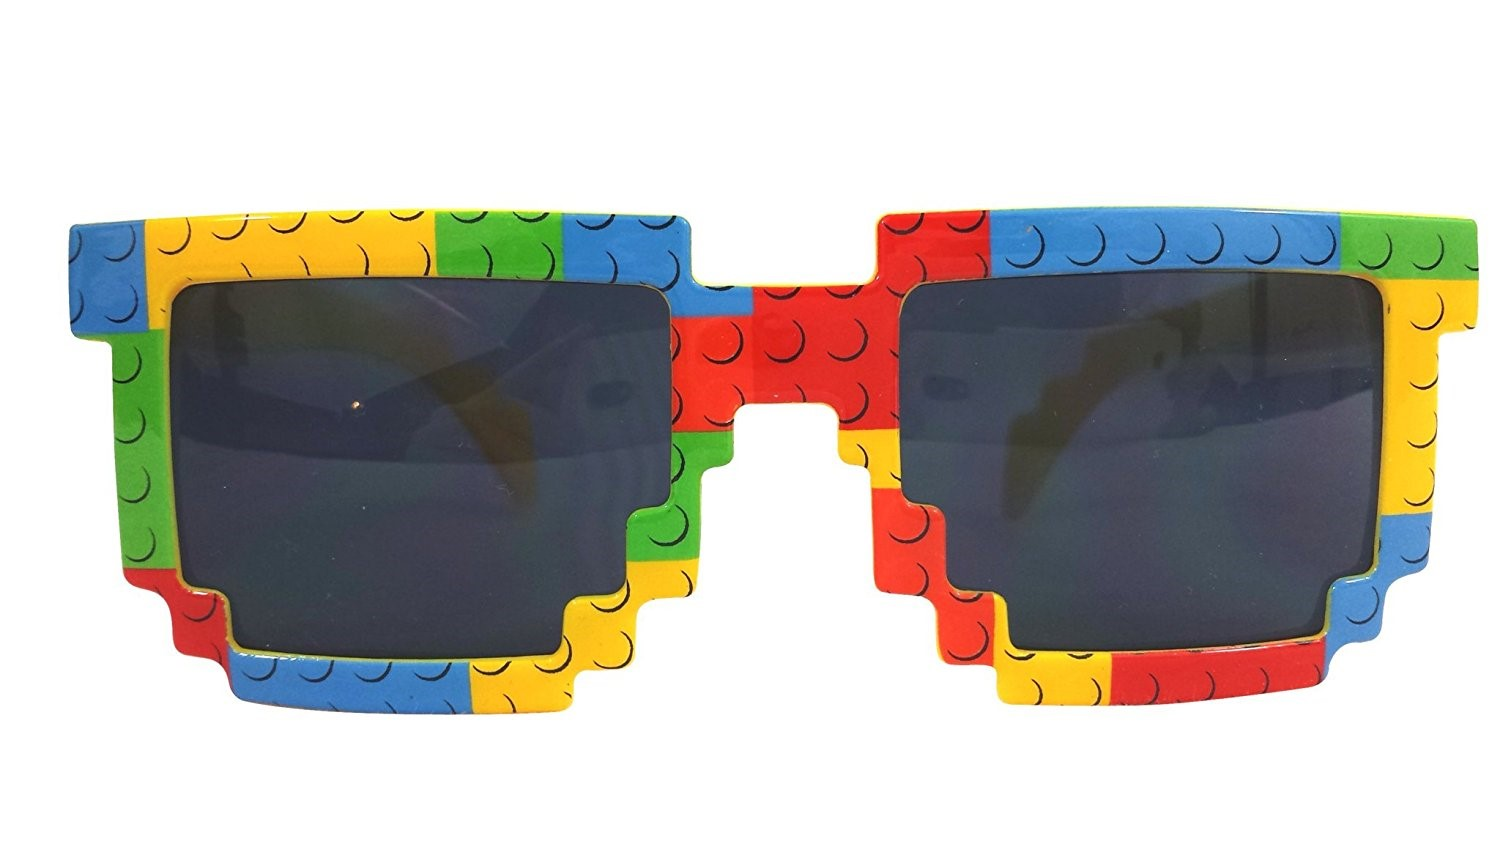 Lego Inspired Lego Inspired Sunglasses To Taste Themes